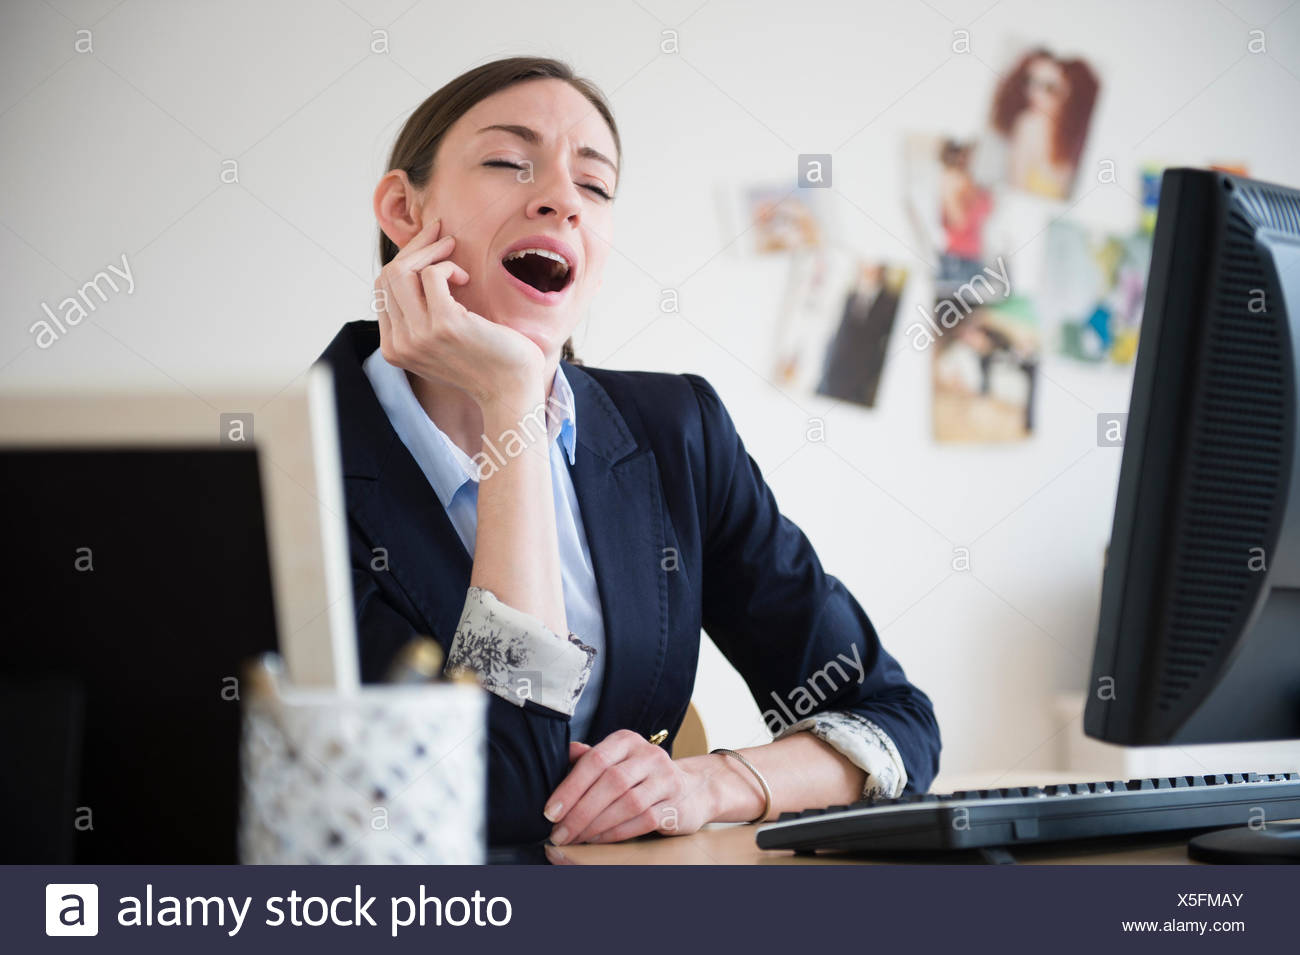 Woman yawning in office Stock Photo